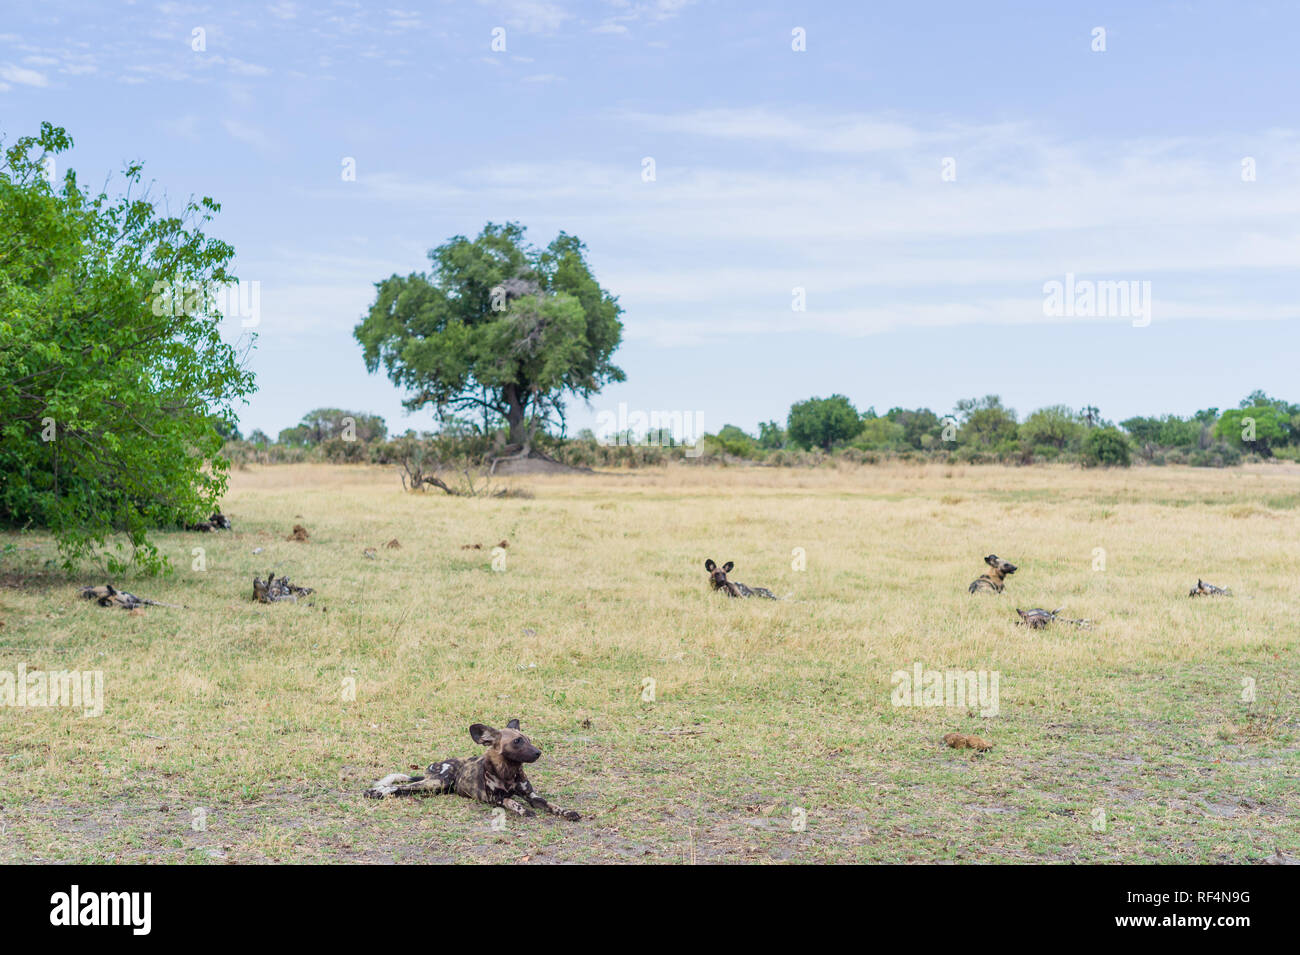 Rare and endangered African wild dogs, Lycaon pictus, are frequently sighted at some of the consessions in the Okavango Delta, Botswana. - Stock Image